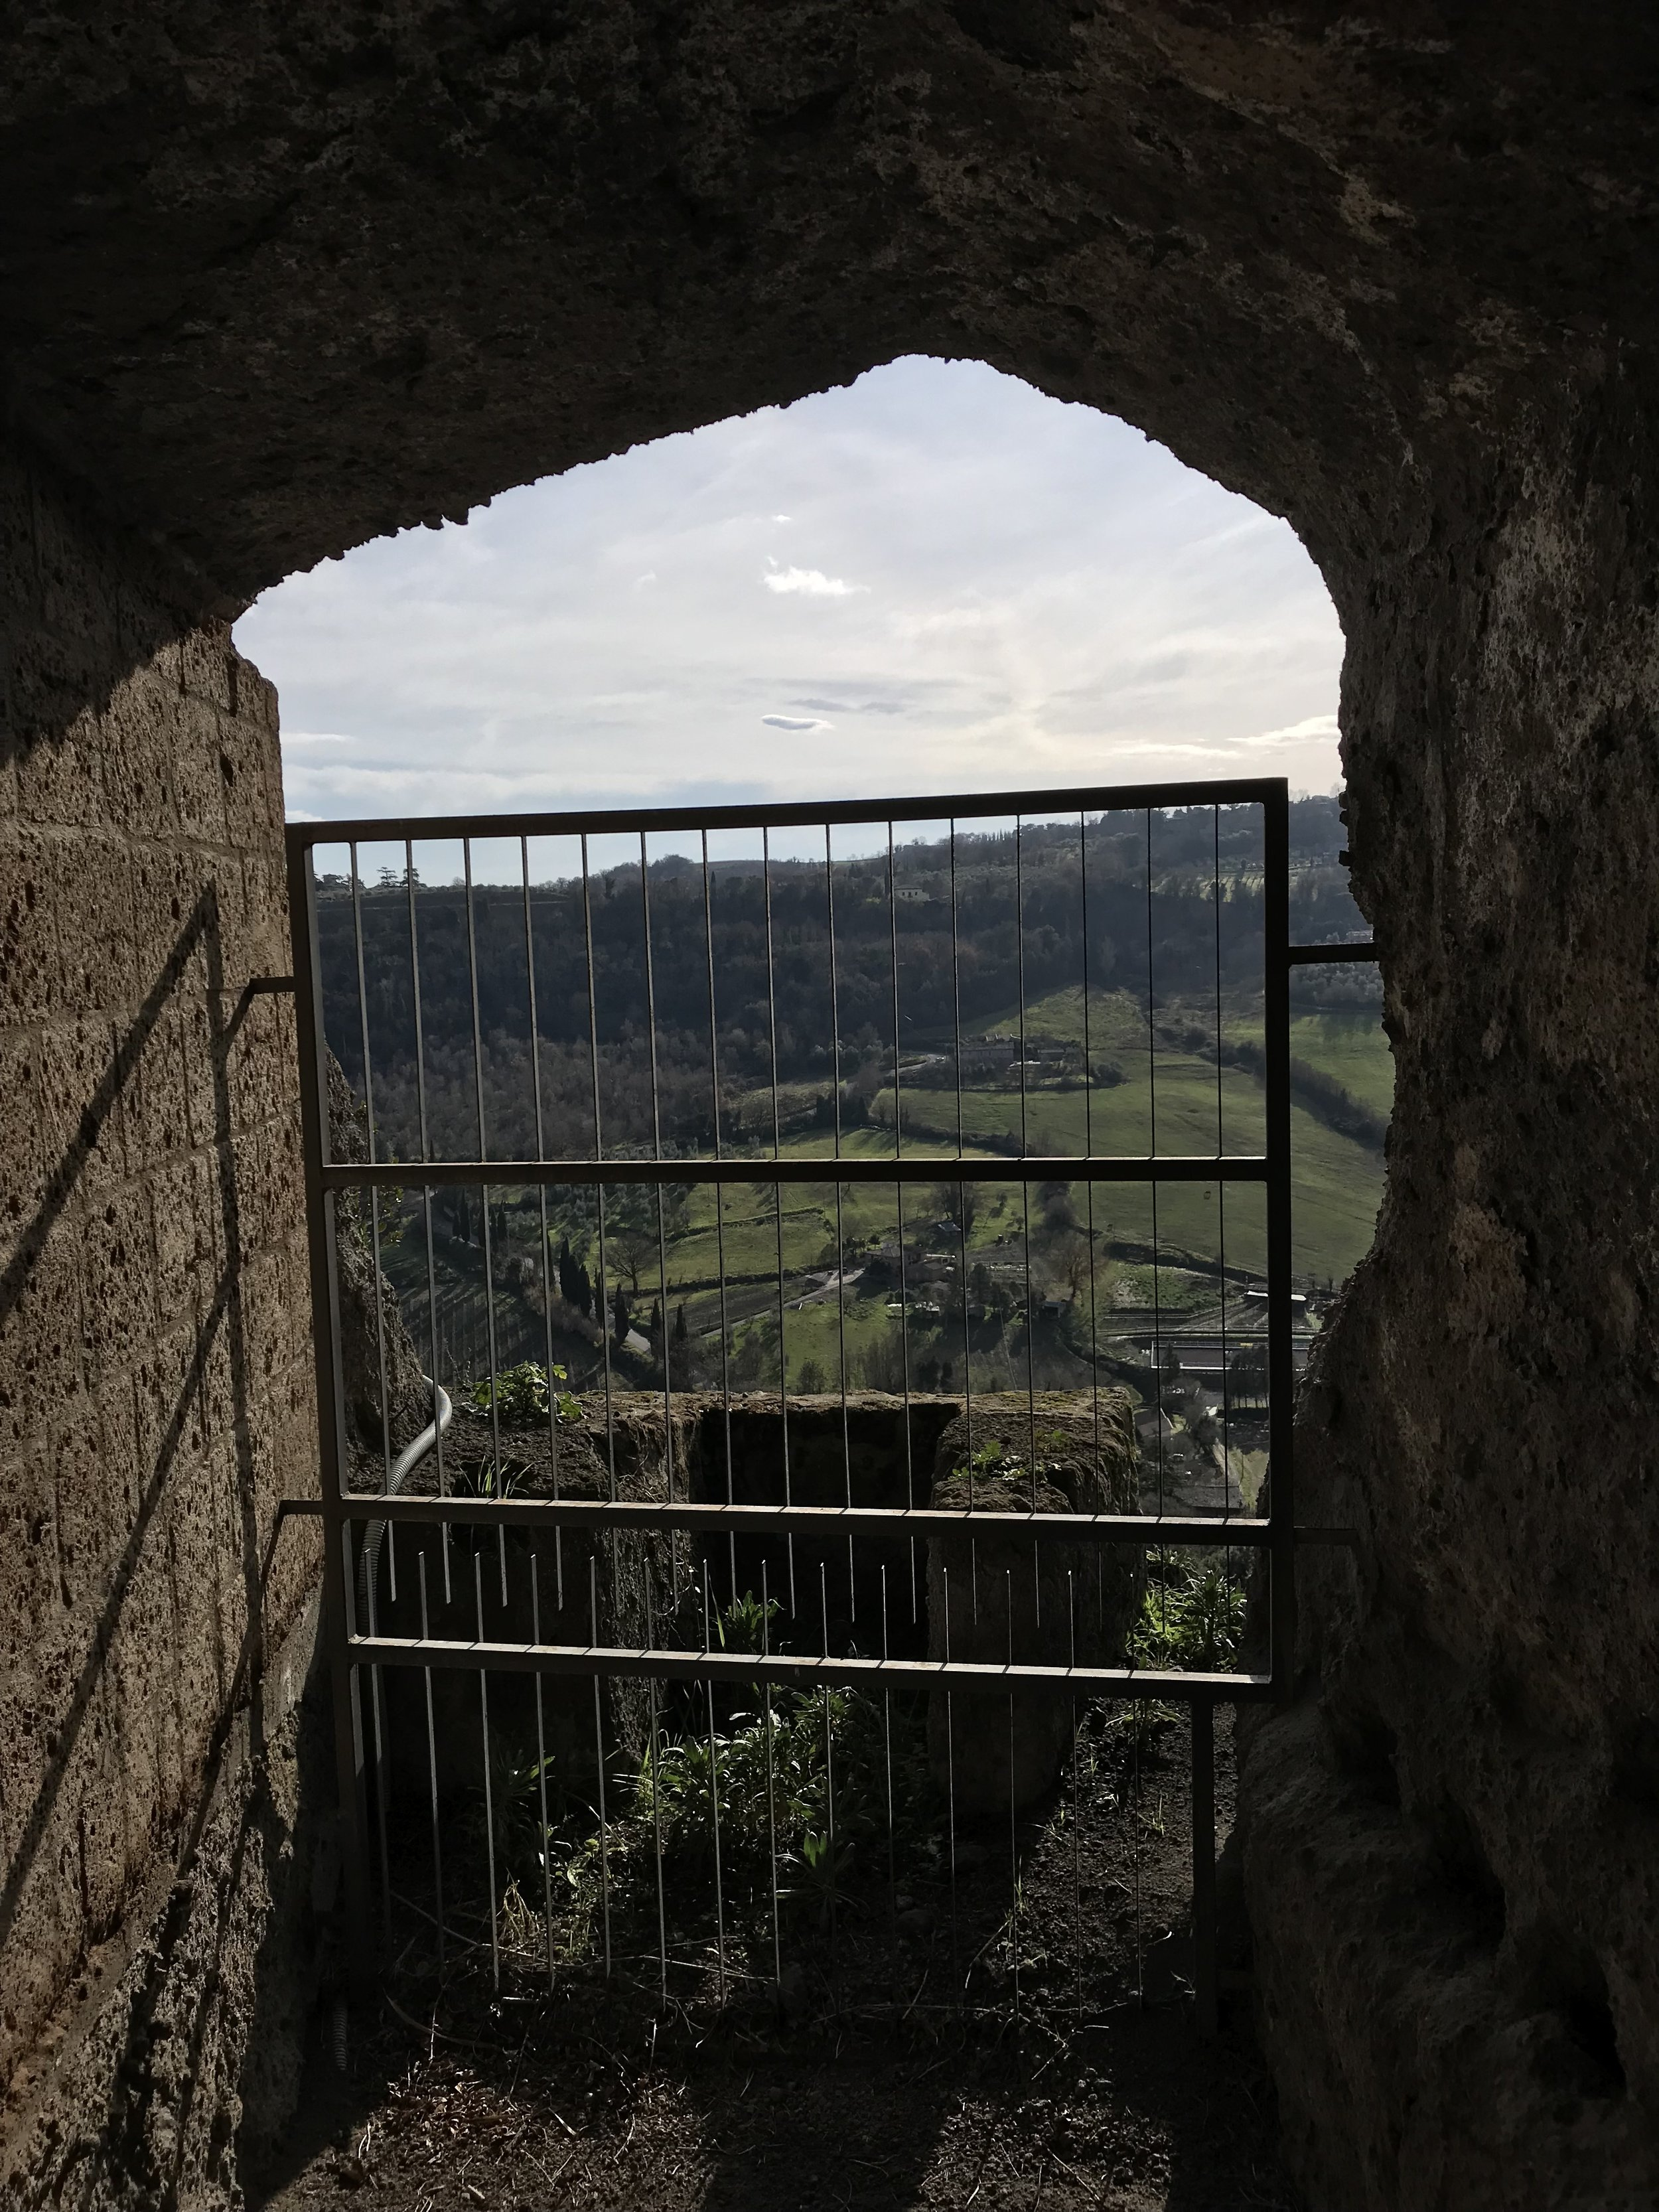 The view out from one of the caves on the edge of the raised plateau. There are also a few restaurants and wine bars in Orvieto's underground.